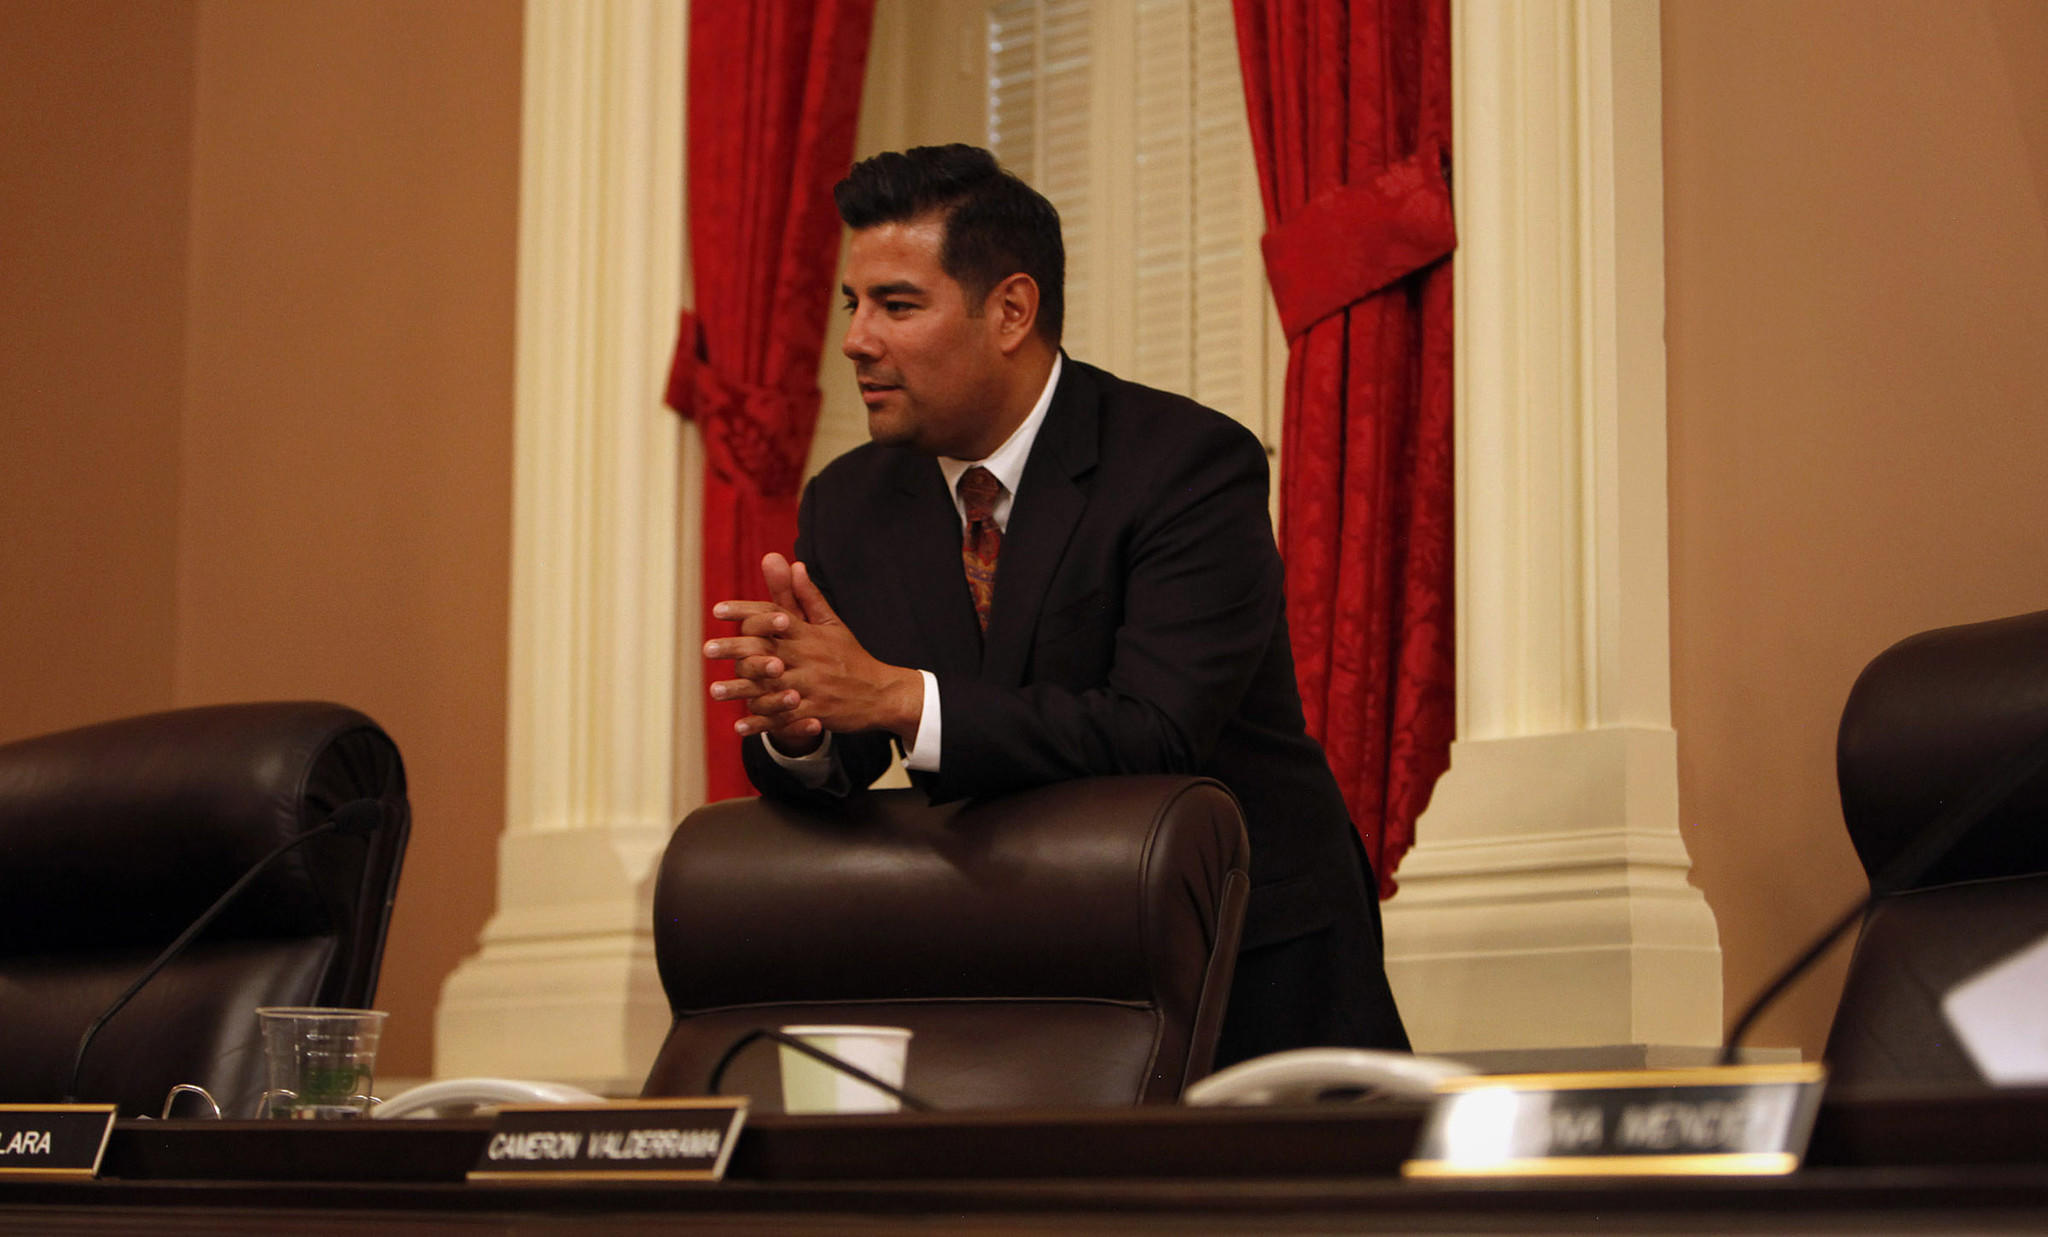 State Sen. Ricardo Lara (D-Bell Gardens) during a recent meeting at the Capitol. On Friday he proposed legislation allowing people in the country illegally to get health coverage through the state's health care exchange.